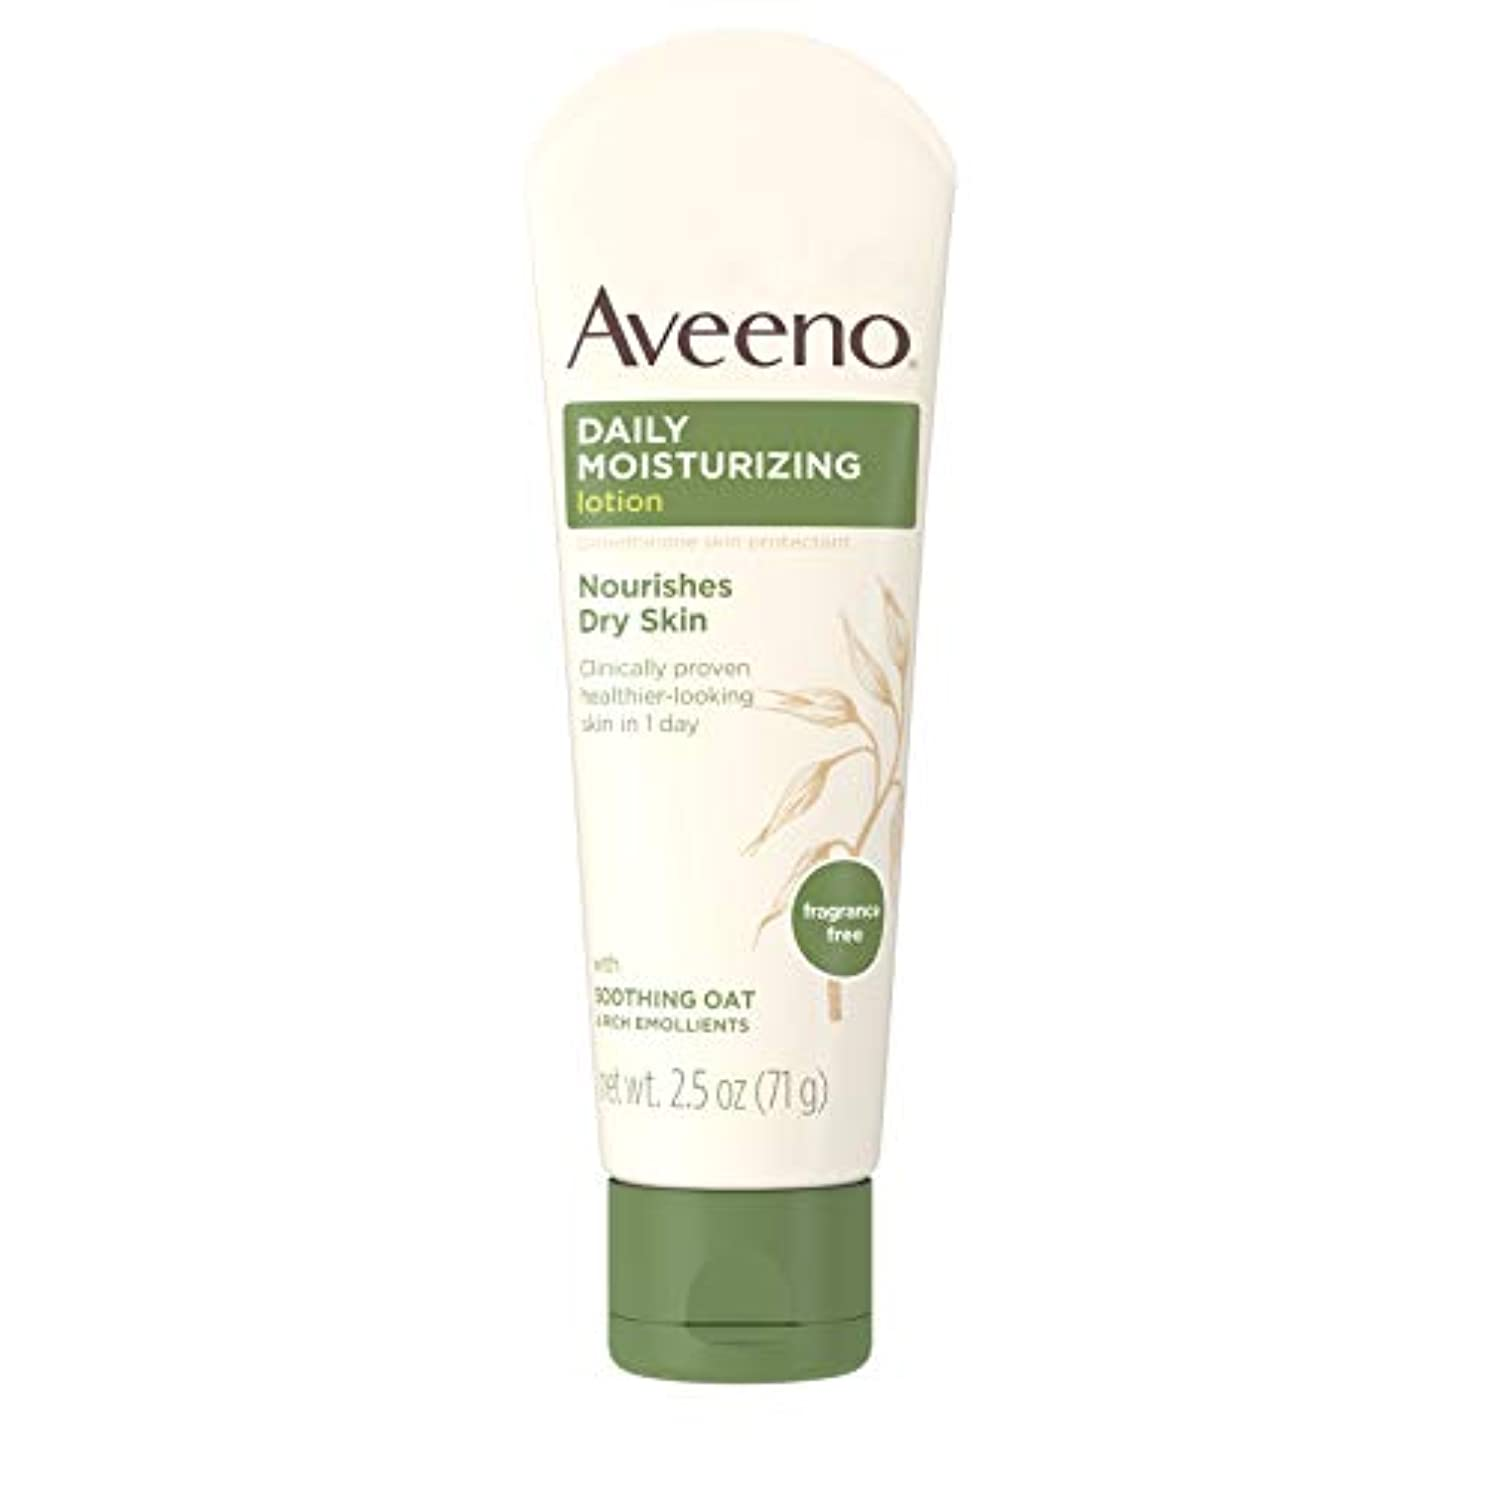 Aveeno Daily Moisturizing Lotion with Oatmeal and Rich Emollients Fragrance Free, 2.5 oz by Aveeno